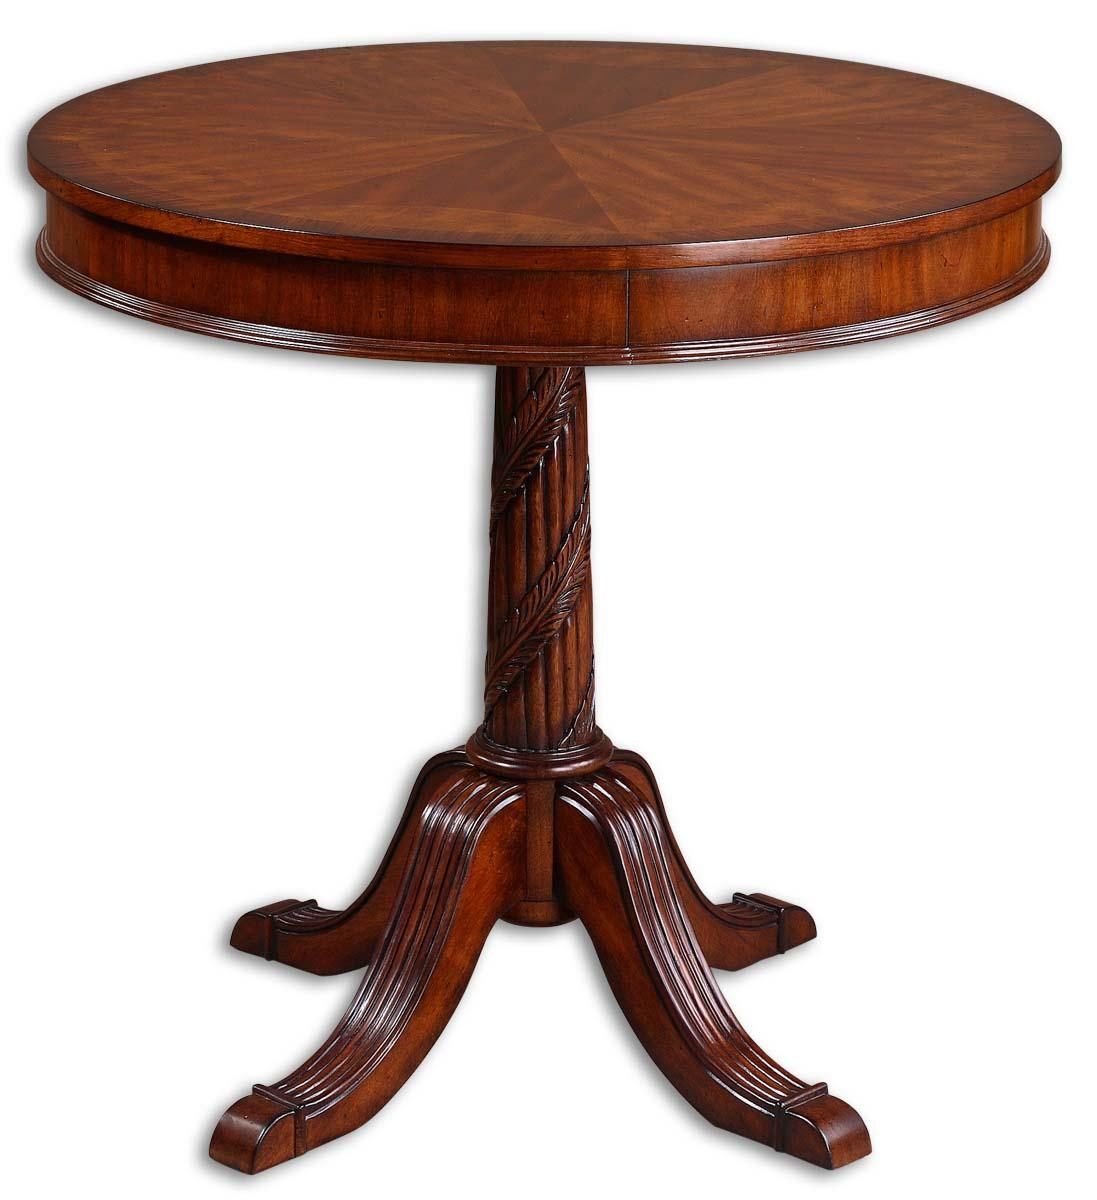 Uttermost Accent Furniture Brakefield Round Table - Item Number: 24149